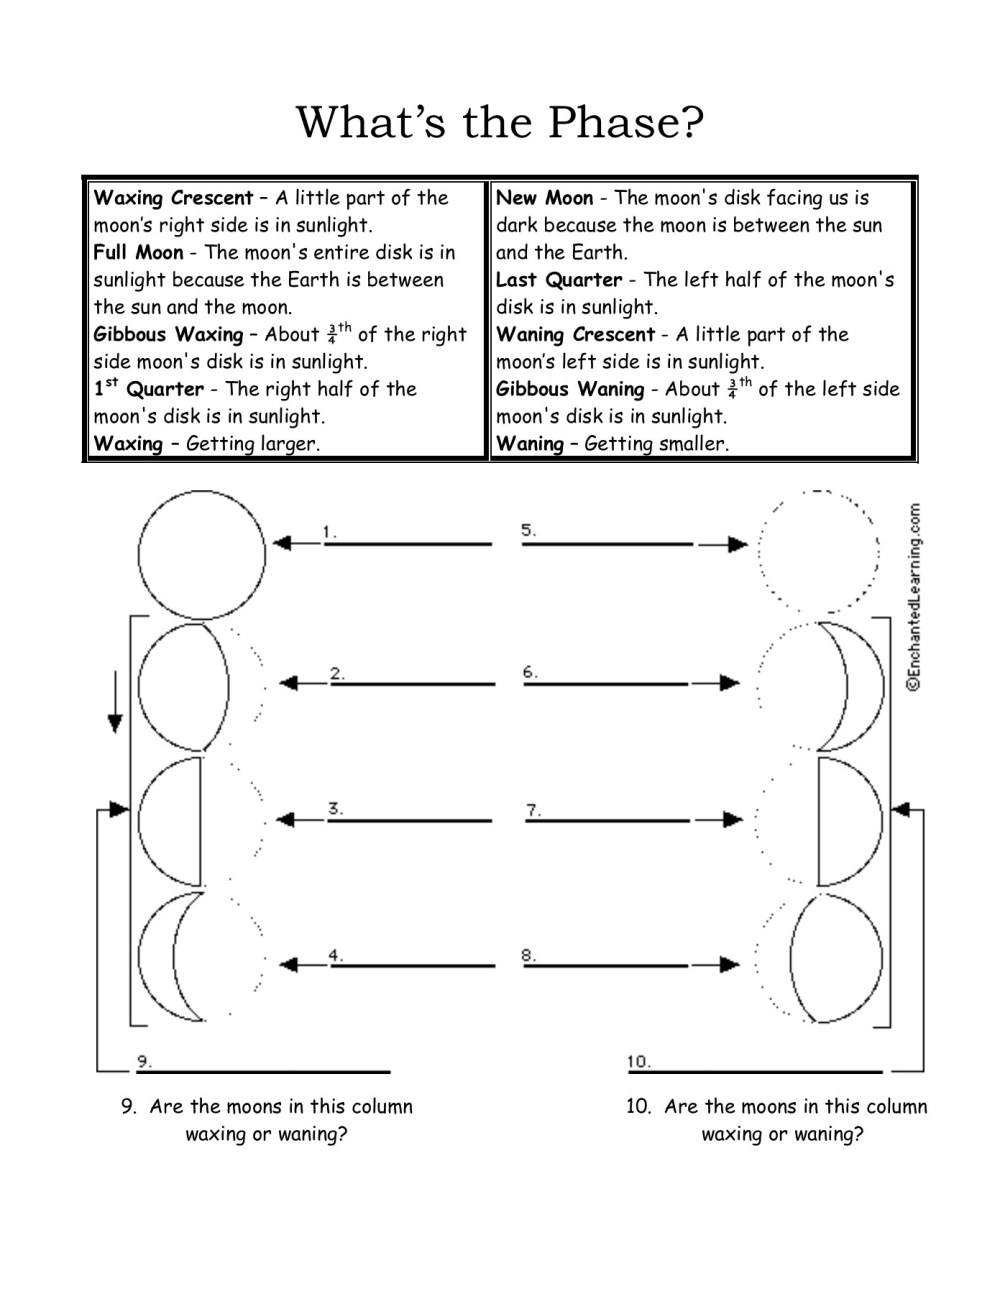 medium resolution of Name Identifying Phases of the Moon - mrscienceut.net-Flip eBook Pages 1 -  6  AnyFlip   AnyFlip